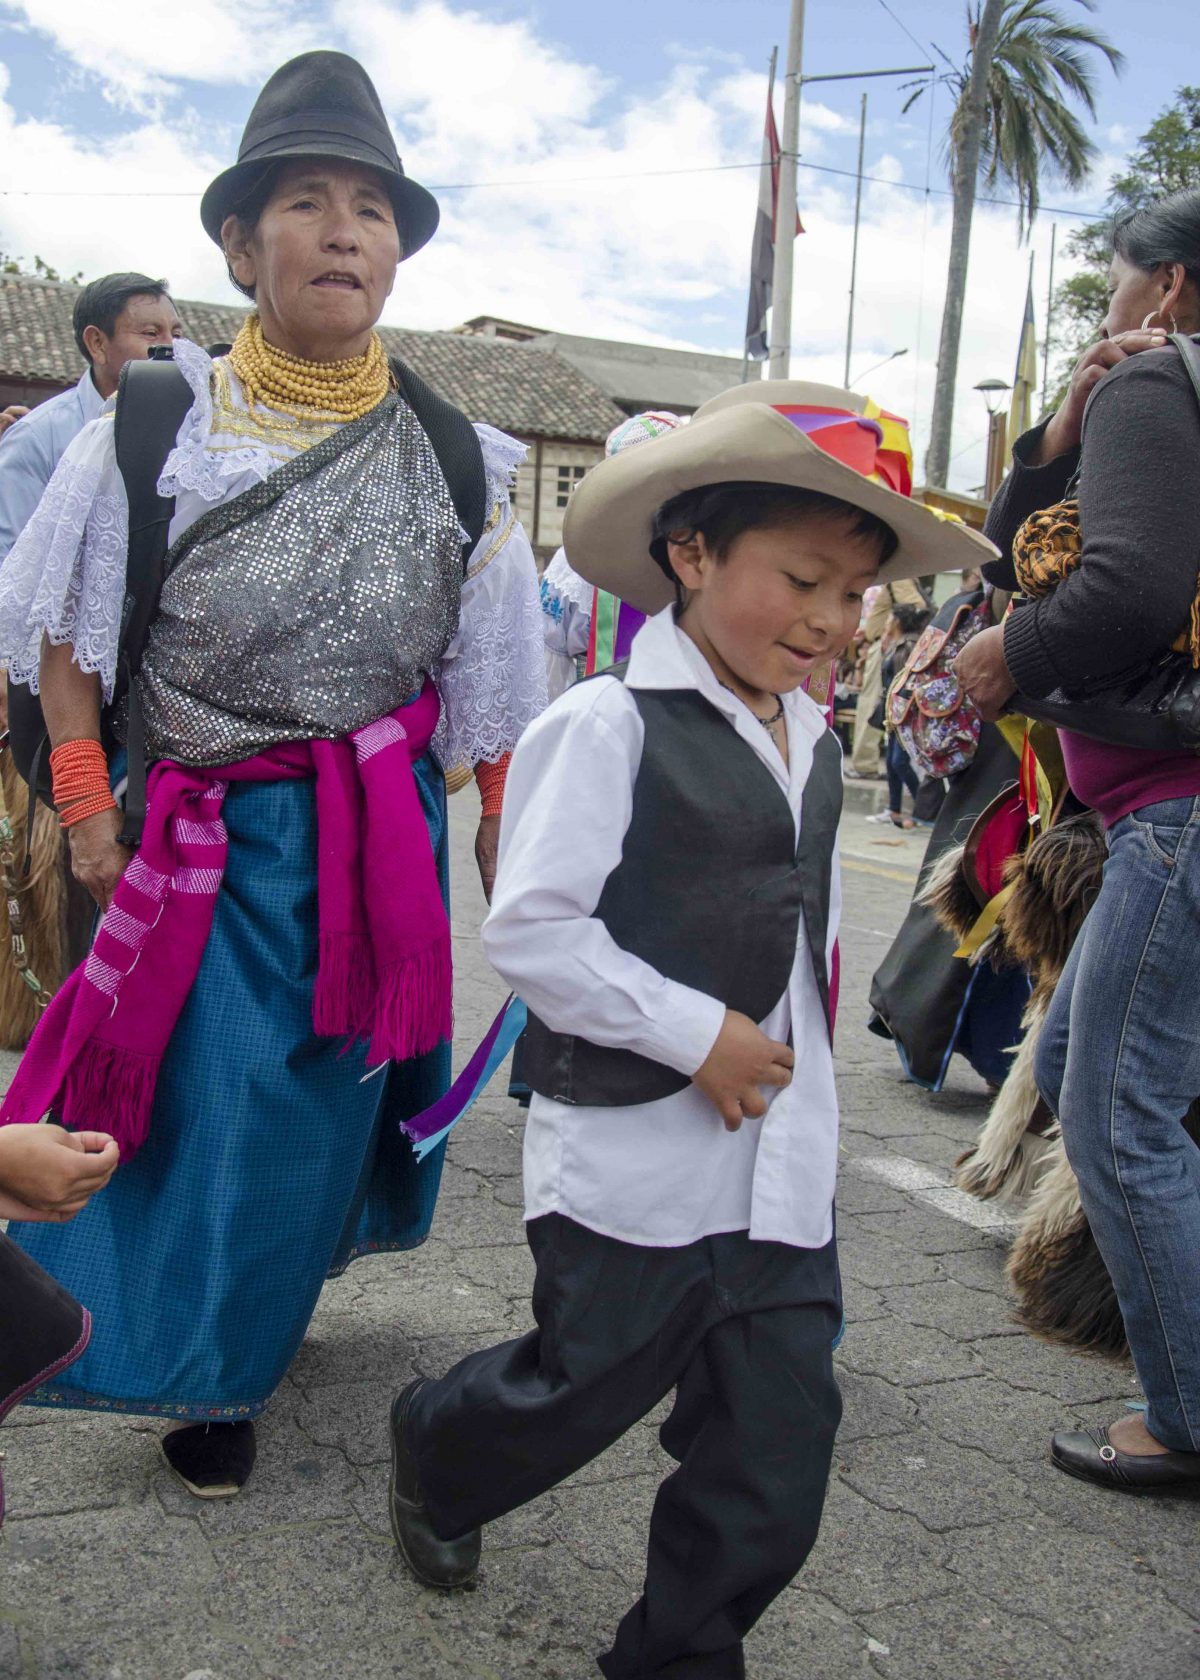 Dancers, Taking of the Plaza, School Children Day, Cotacachi, Ecuador